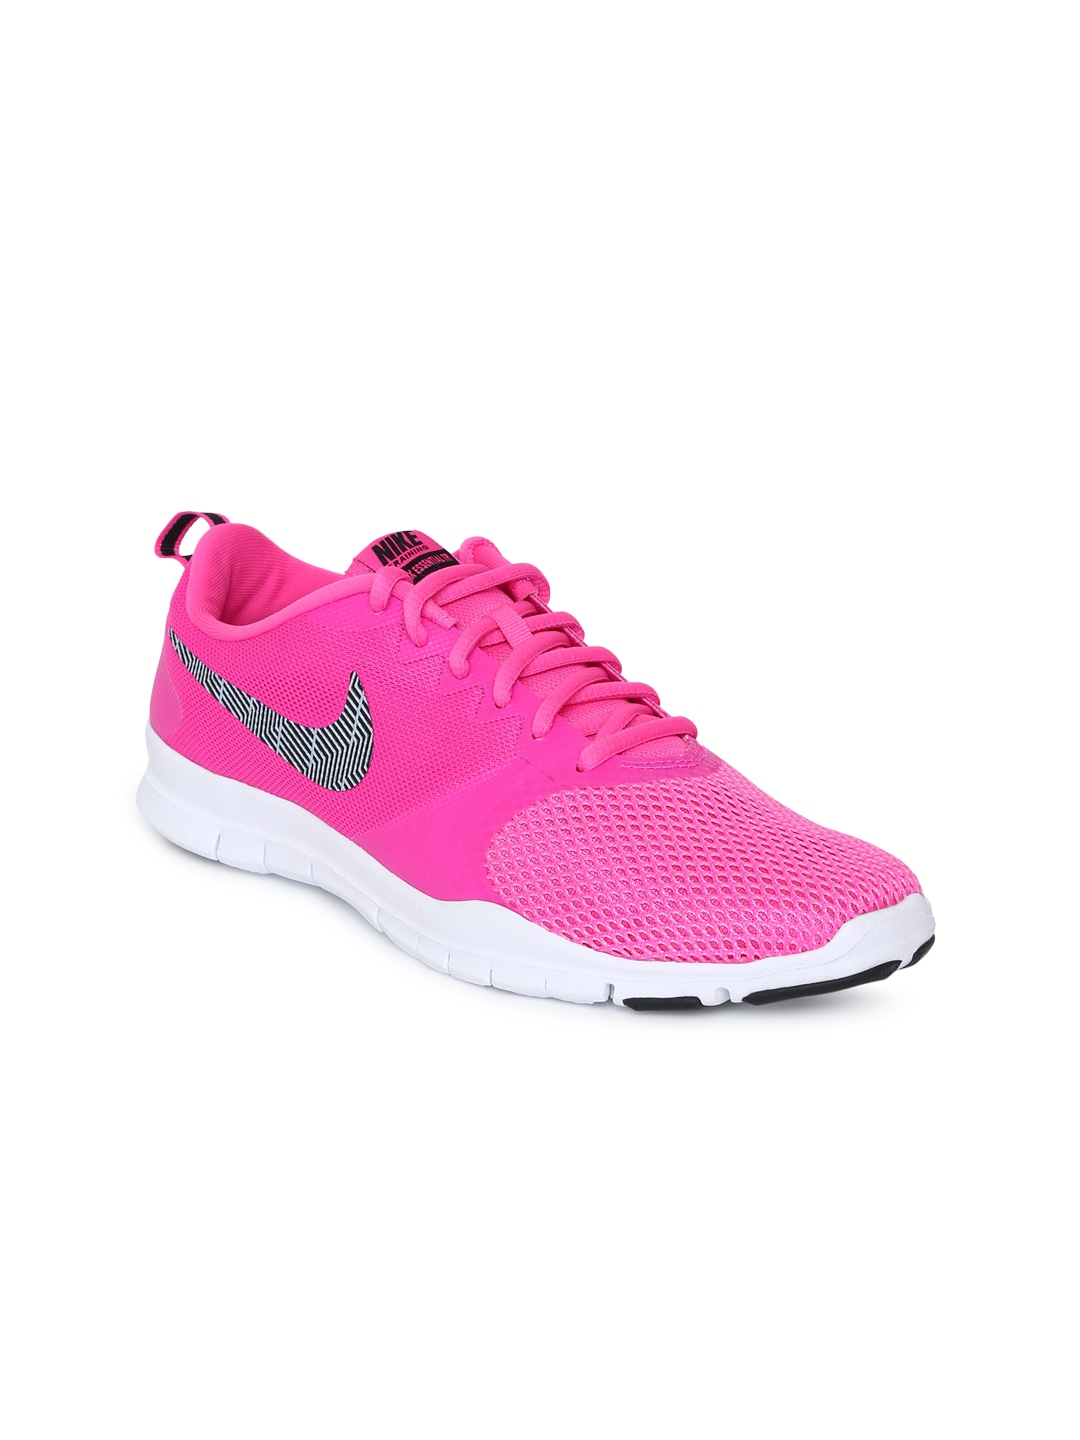 cheap for discount 52015 d7b88 Nike Training Shoes - Buy Nike Training Shoes For Men   Women in India